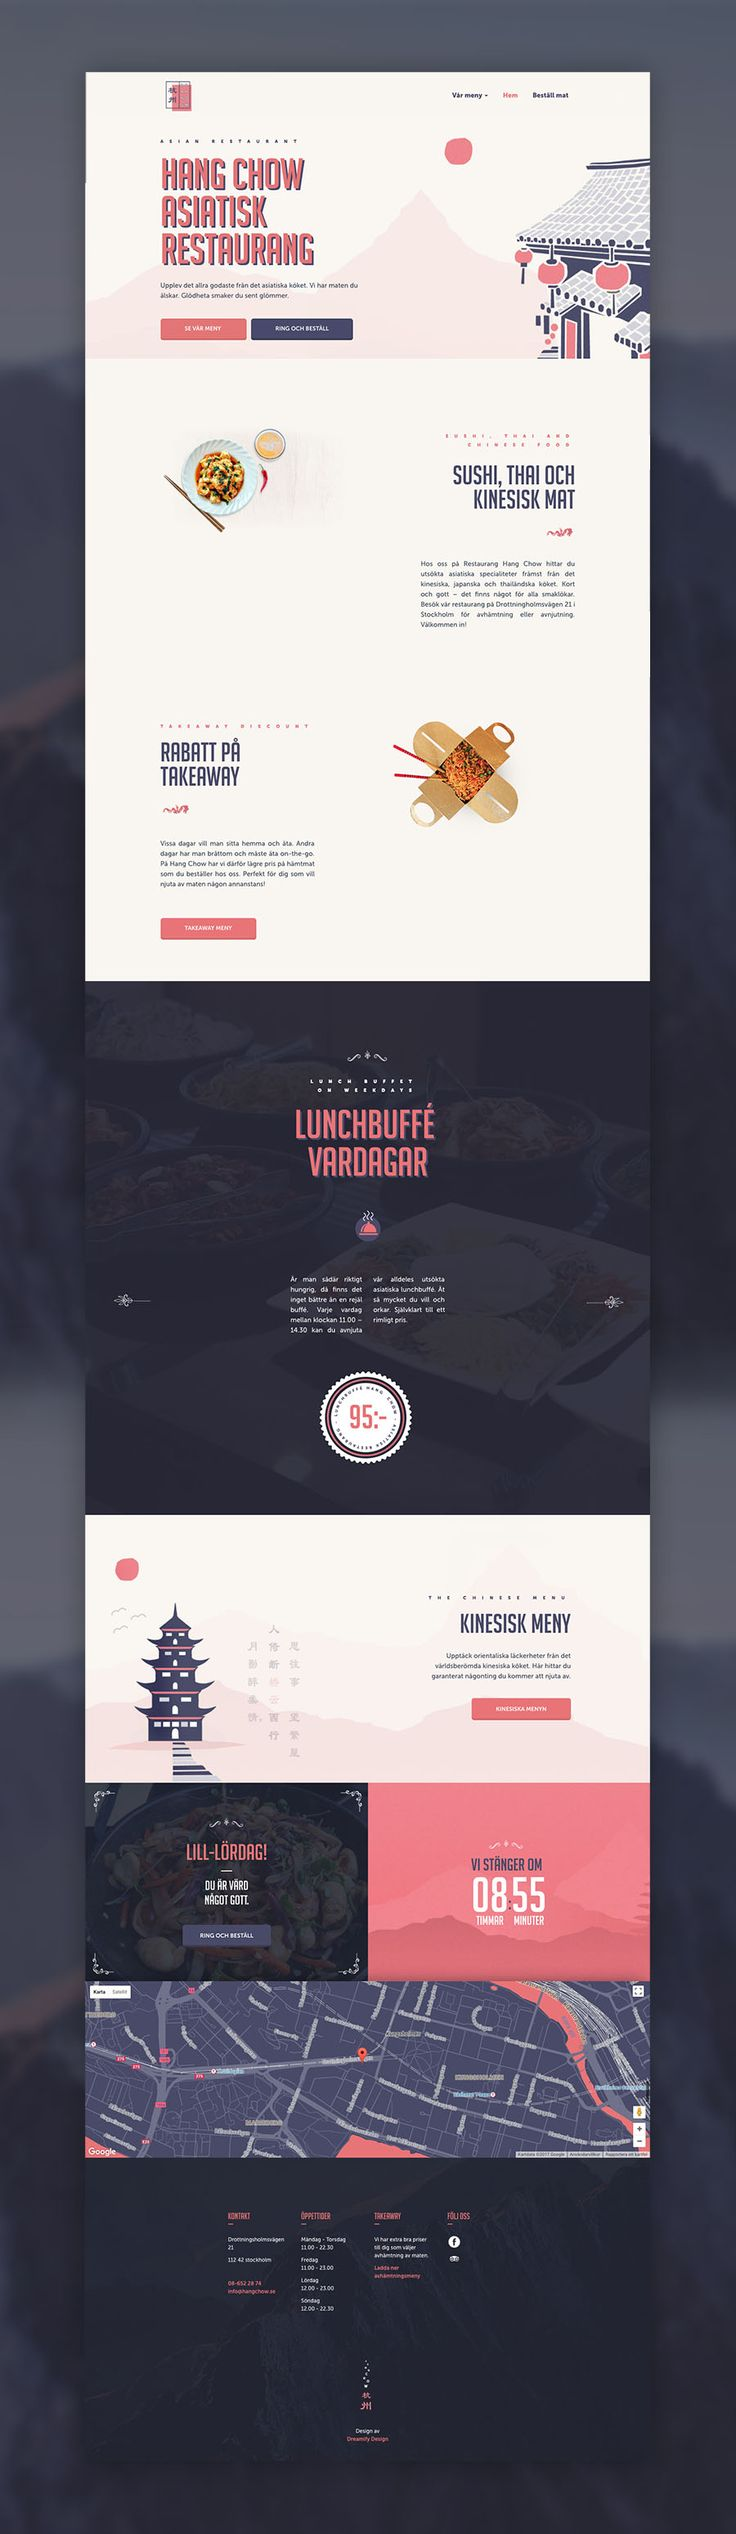 Spicy and oriental mystery -  Asian restaurant website design. Sushi, thai and chinese food.  #webdesign #website #uidesign #uiux #spicy #asianrestaurant #food